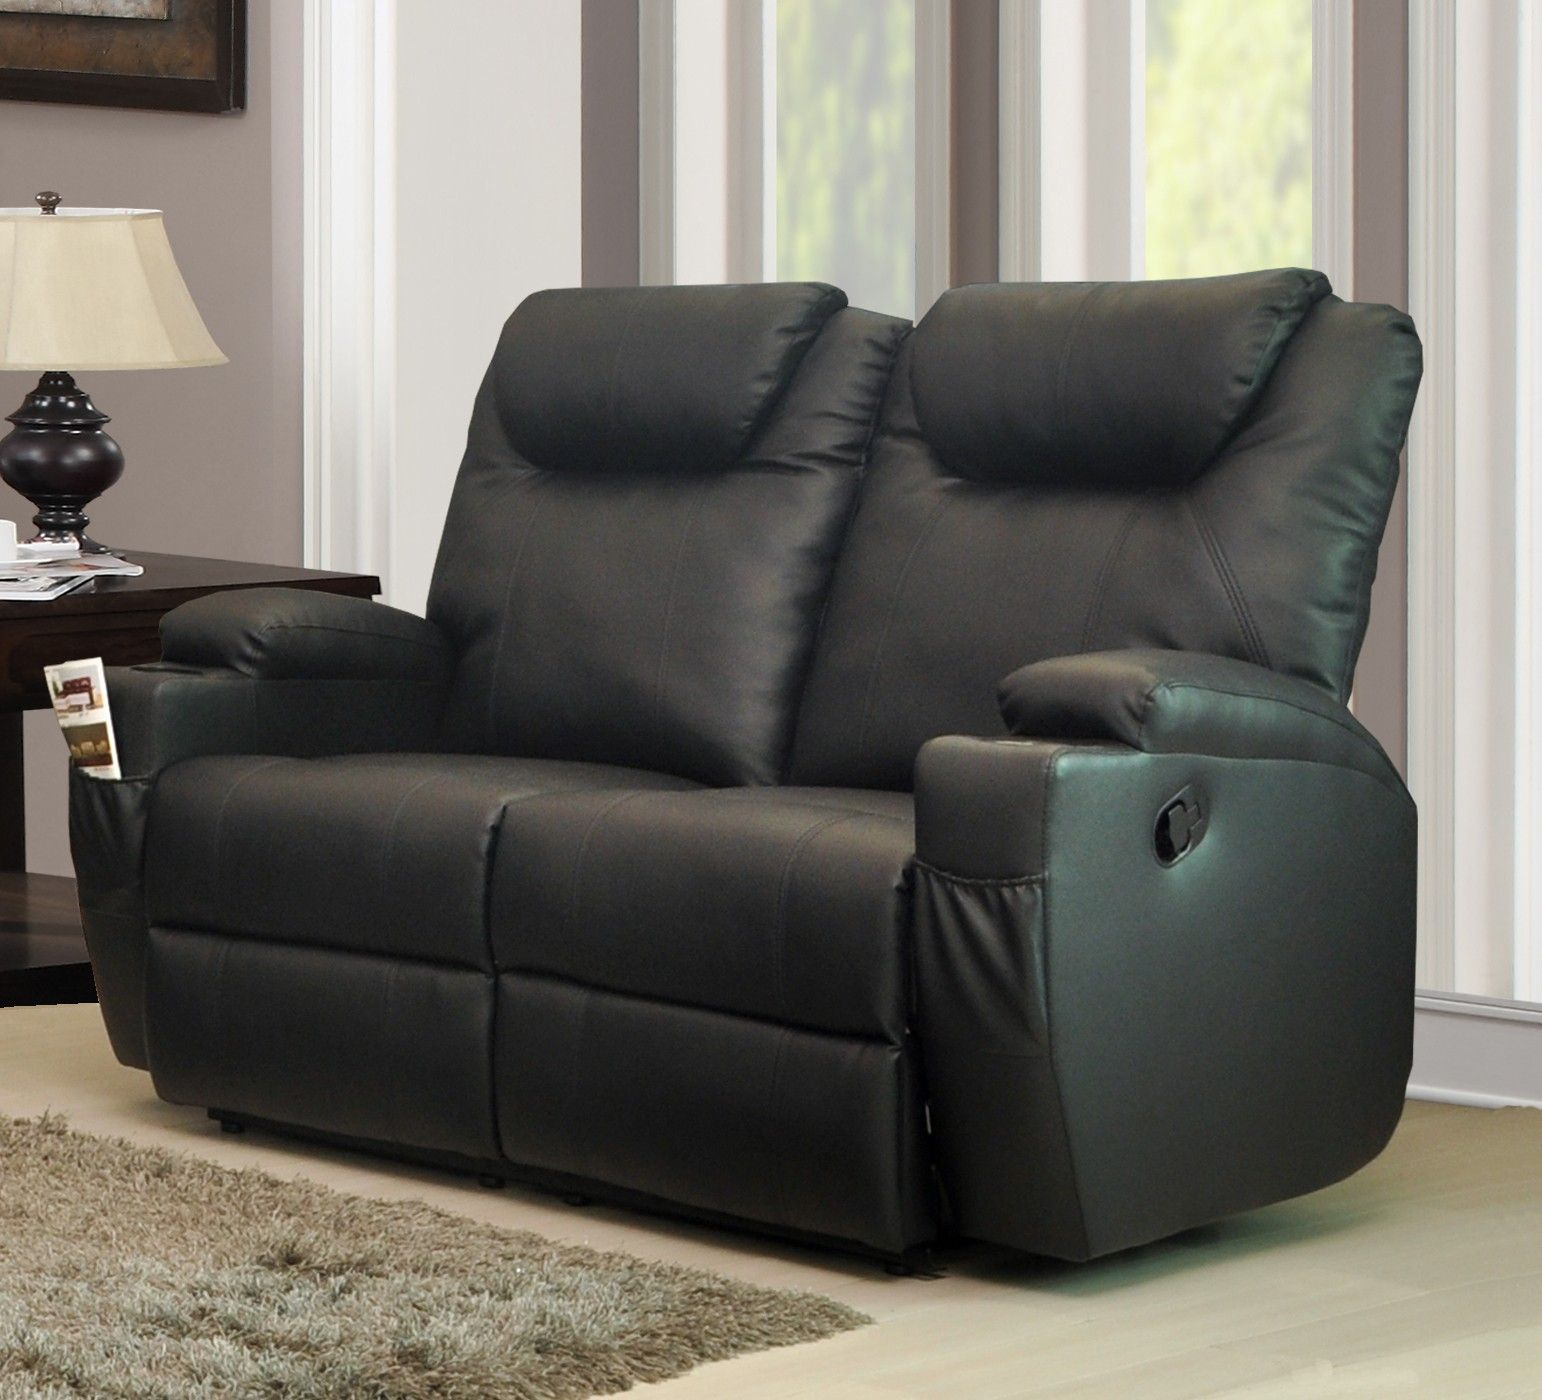 Furniture Living Room Black Full Grain Leather Reclining Sofa for Two Lazy Boy Leather Sofa & Furniture Living Room Black Full Grain Leather Reclining Sofa for ... islam-shia.org